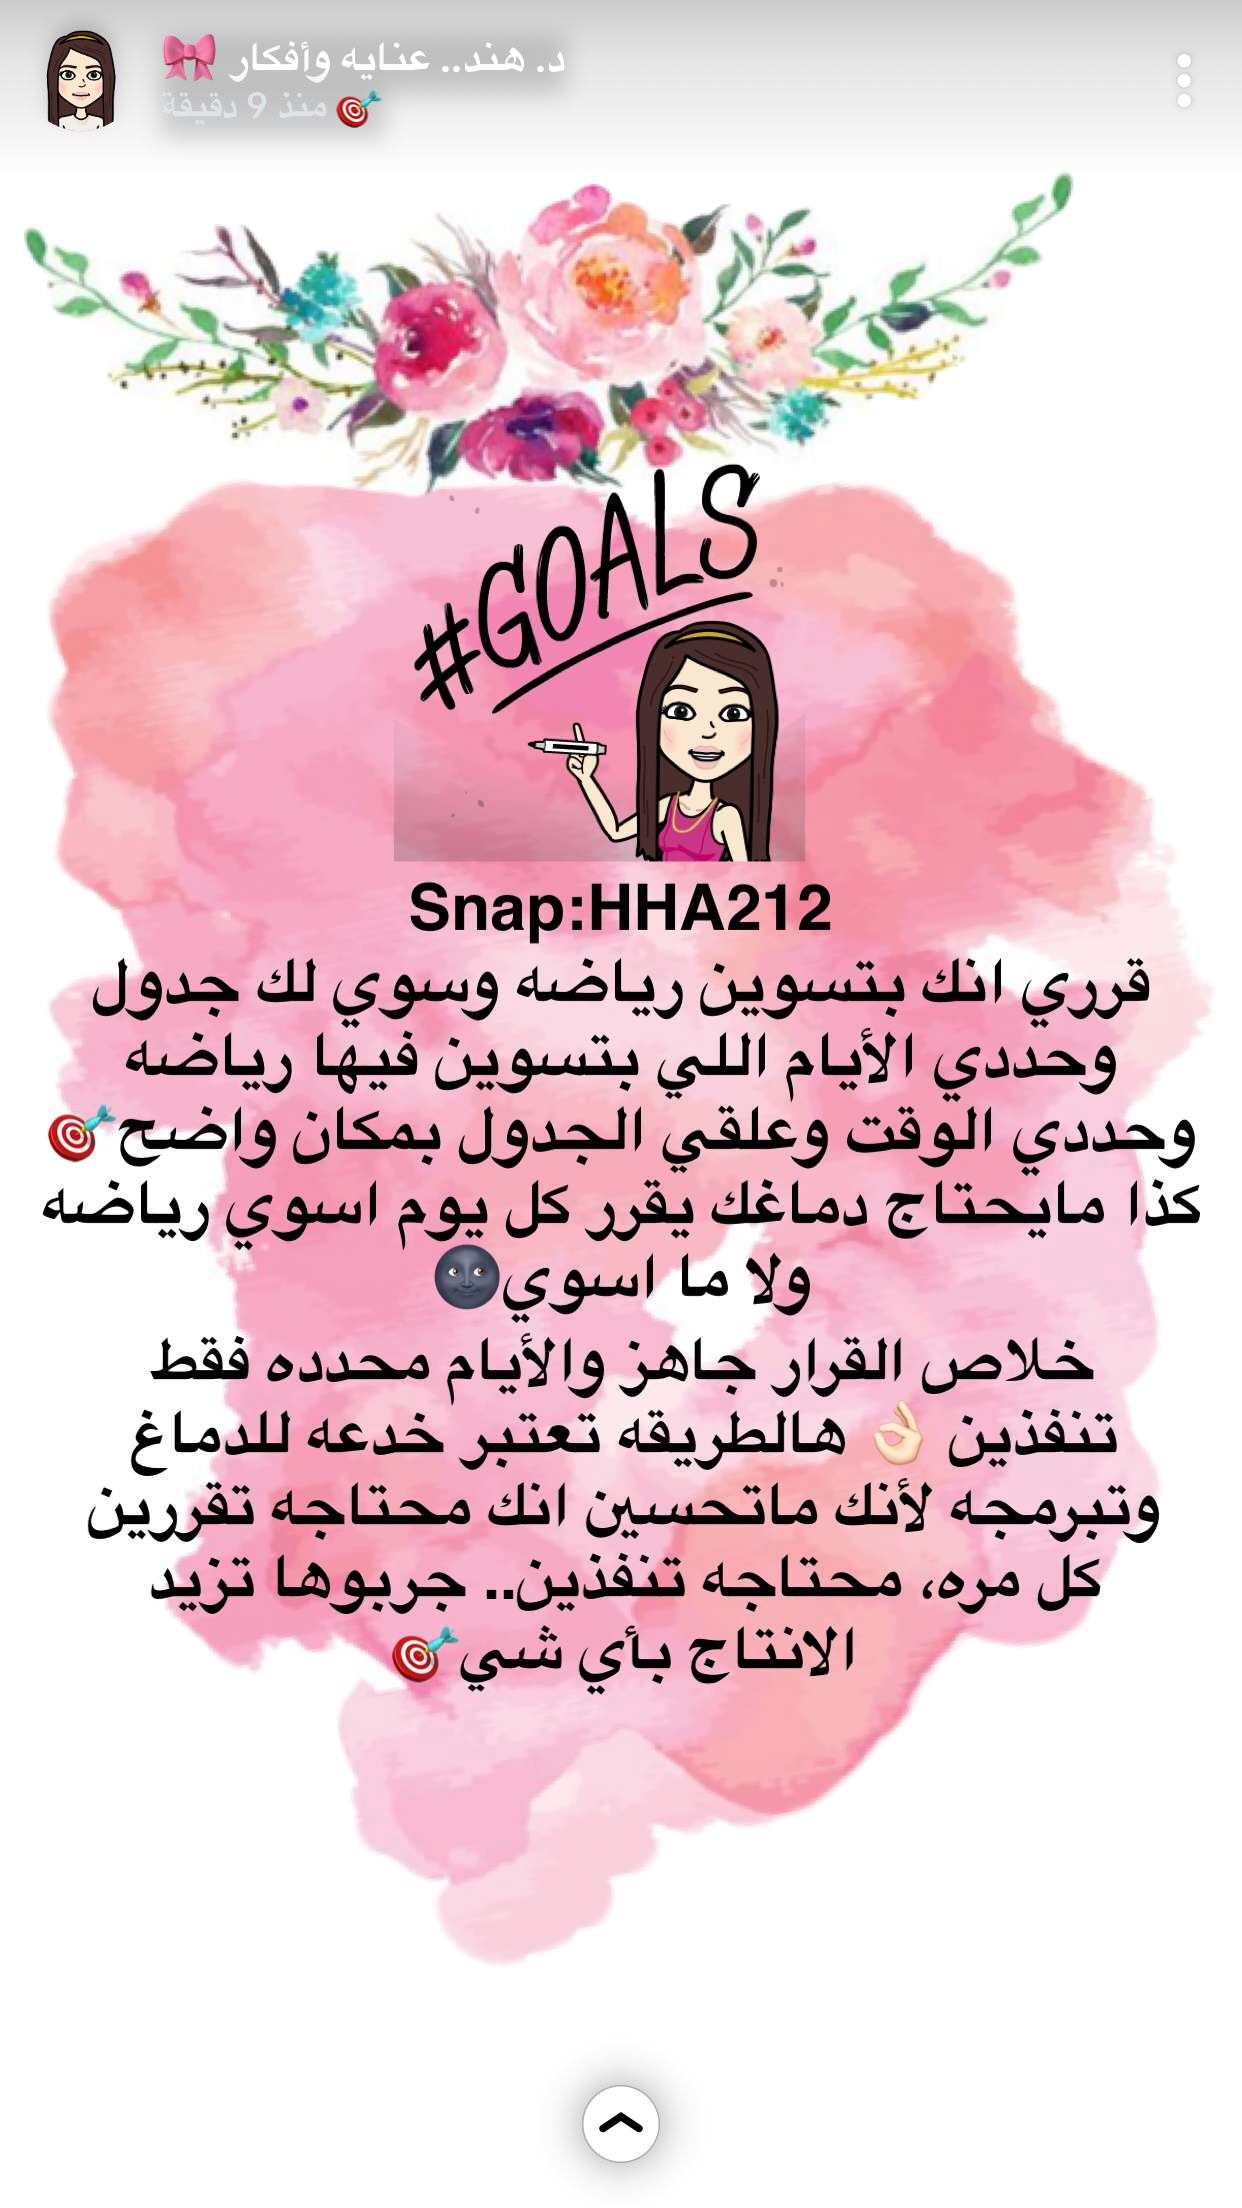 Pin By Hanan Suliman On Valuable Tips 2 Social Quotes Beauty Skin Care Routine Marriage Life